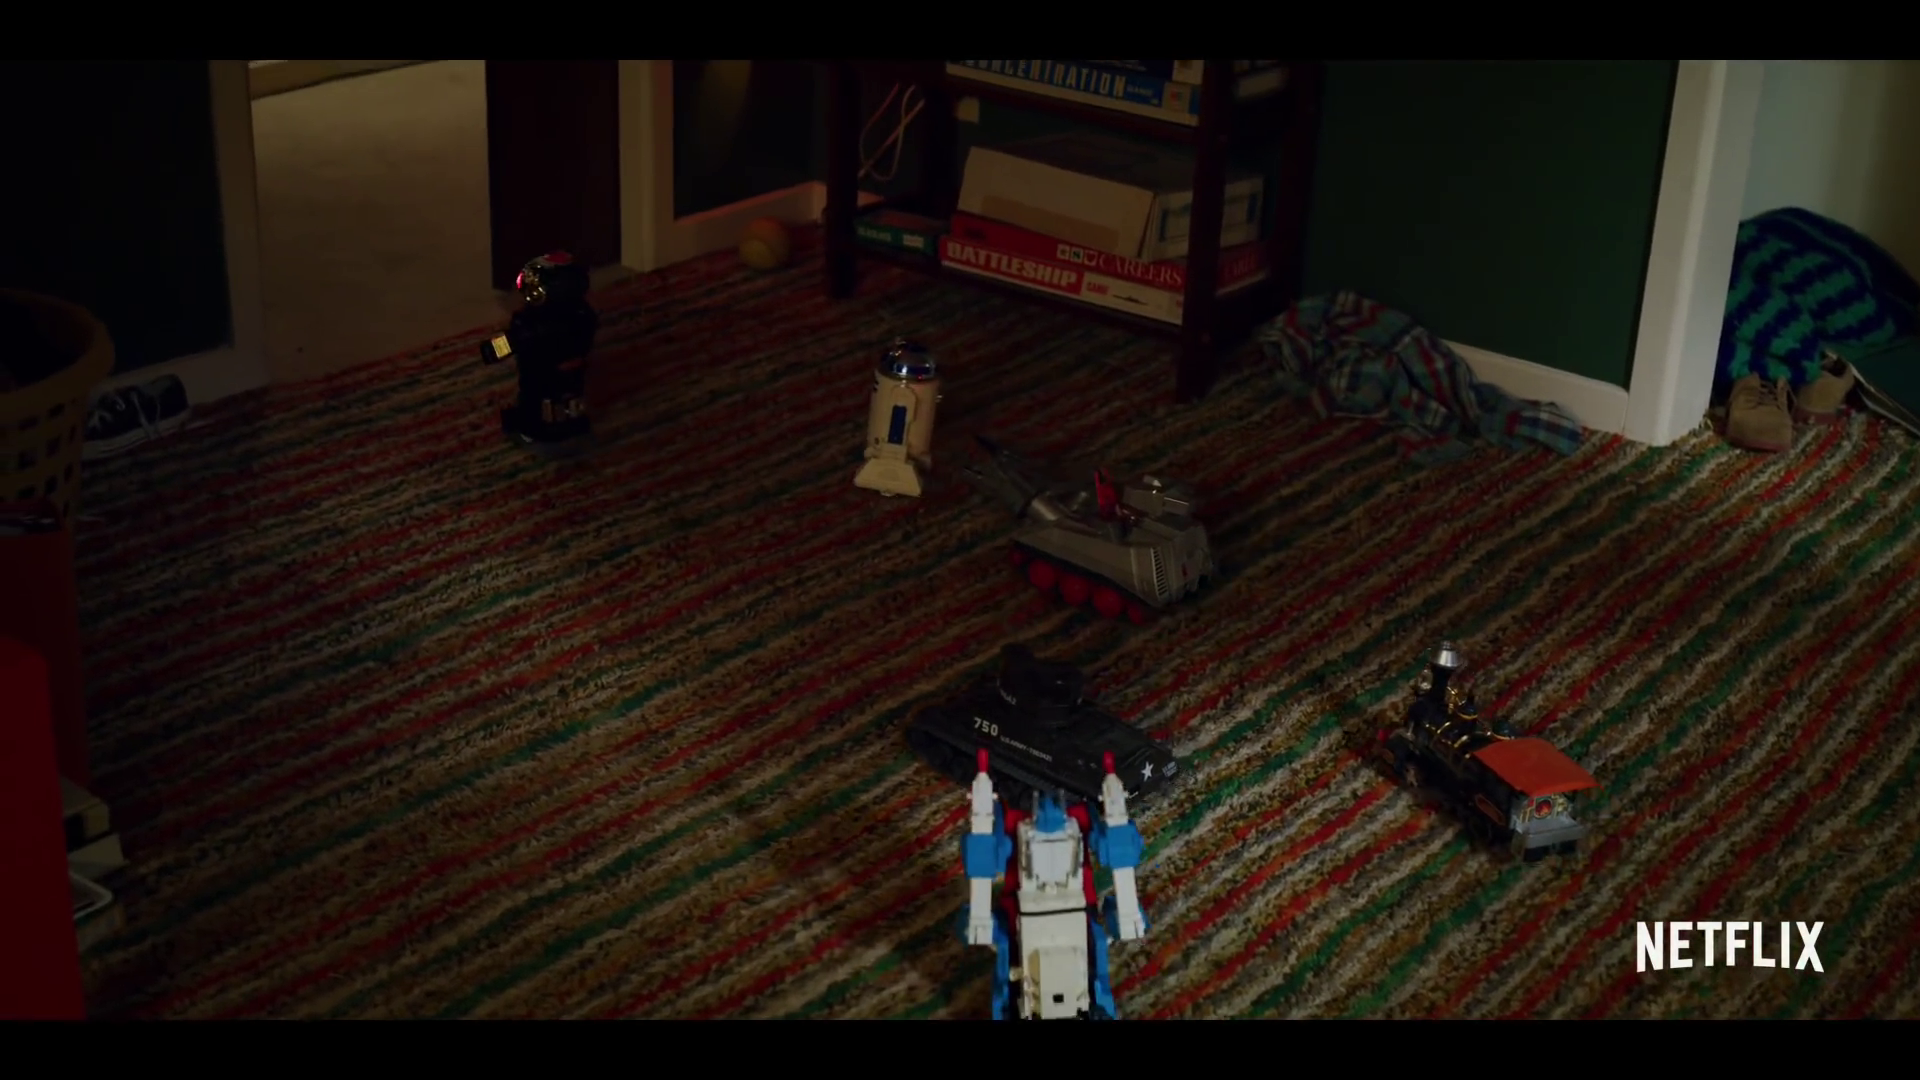 Transformers G1 Ultra Magnus Spotted In Stranger Things Season 3